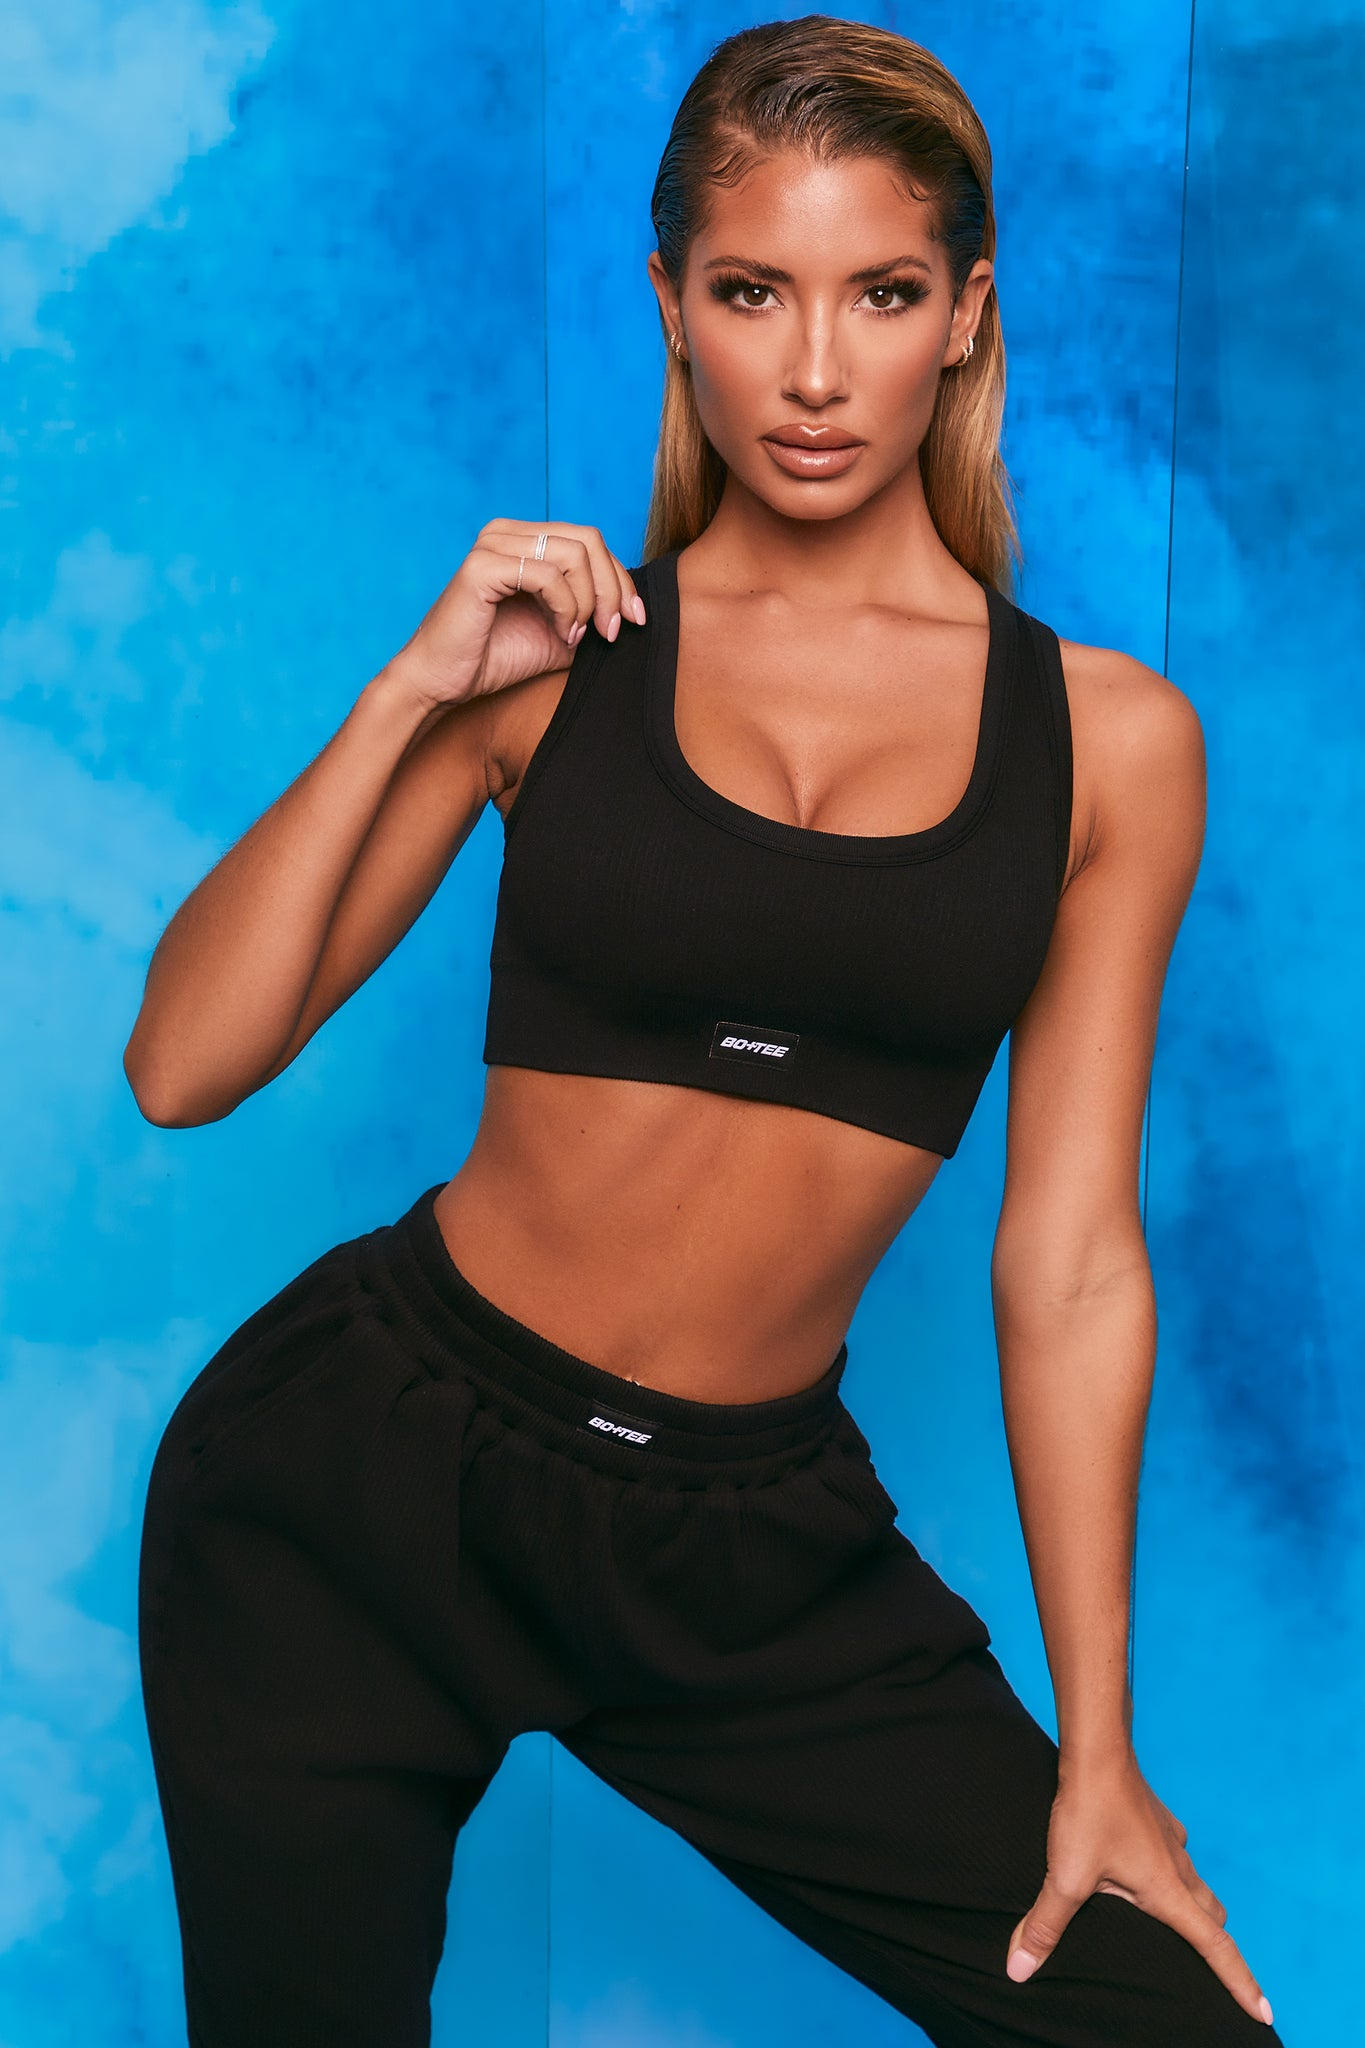 Plain black ribbed scoop neck sports bra. Image 6 of 6